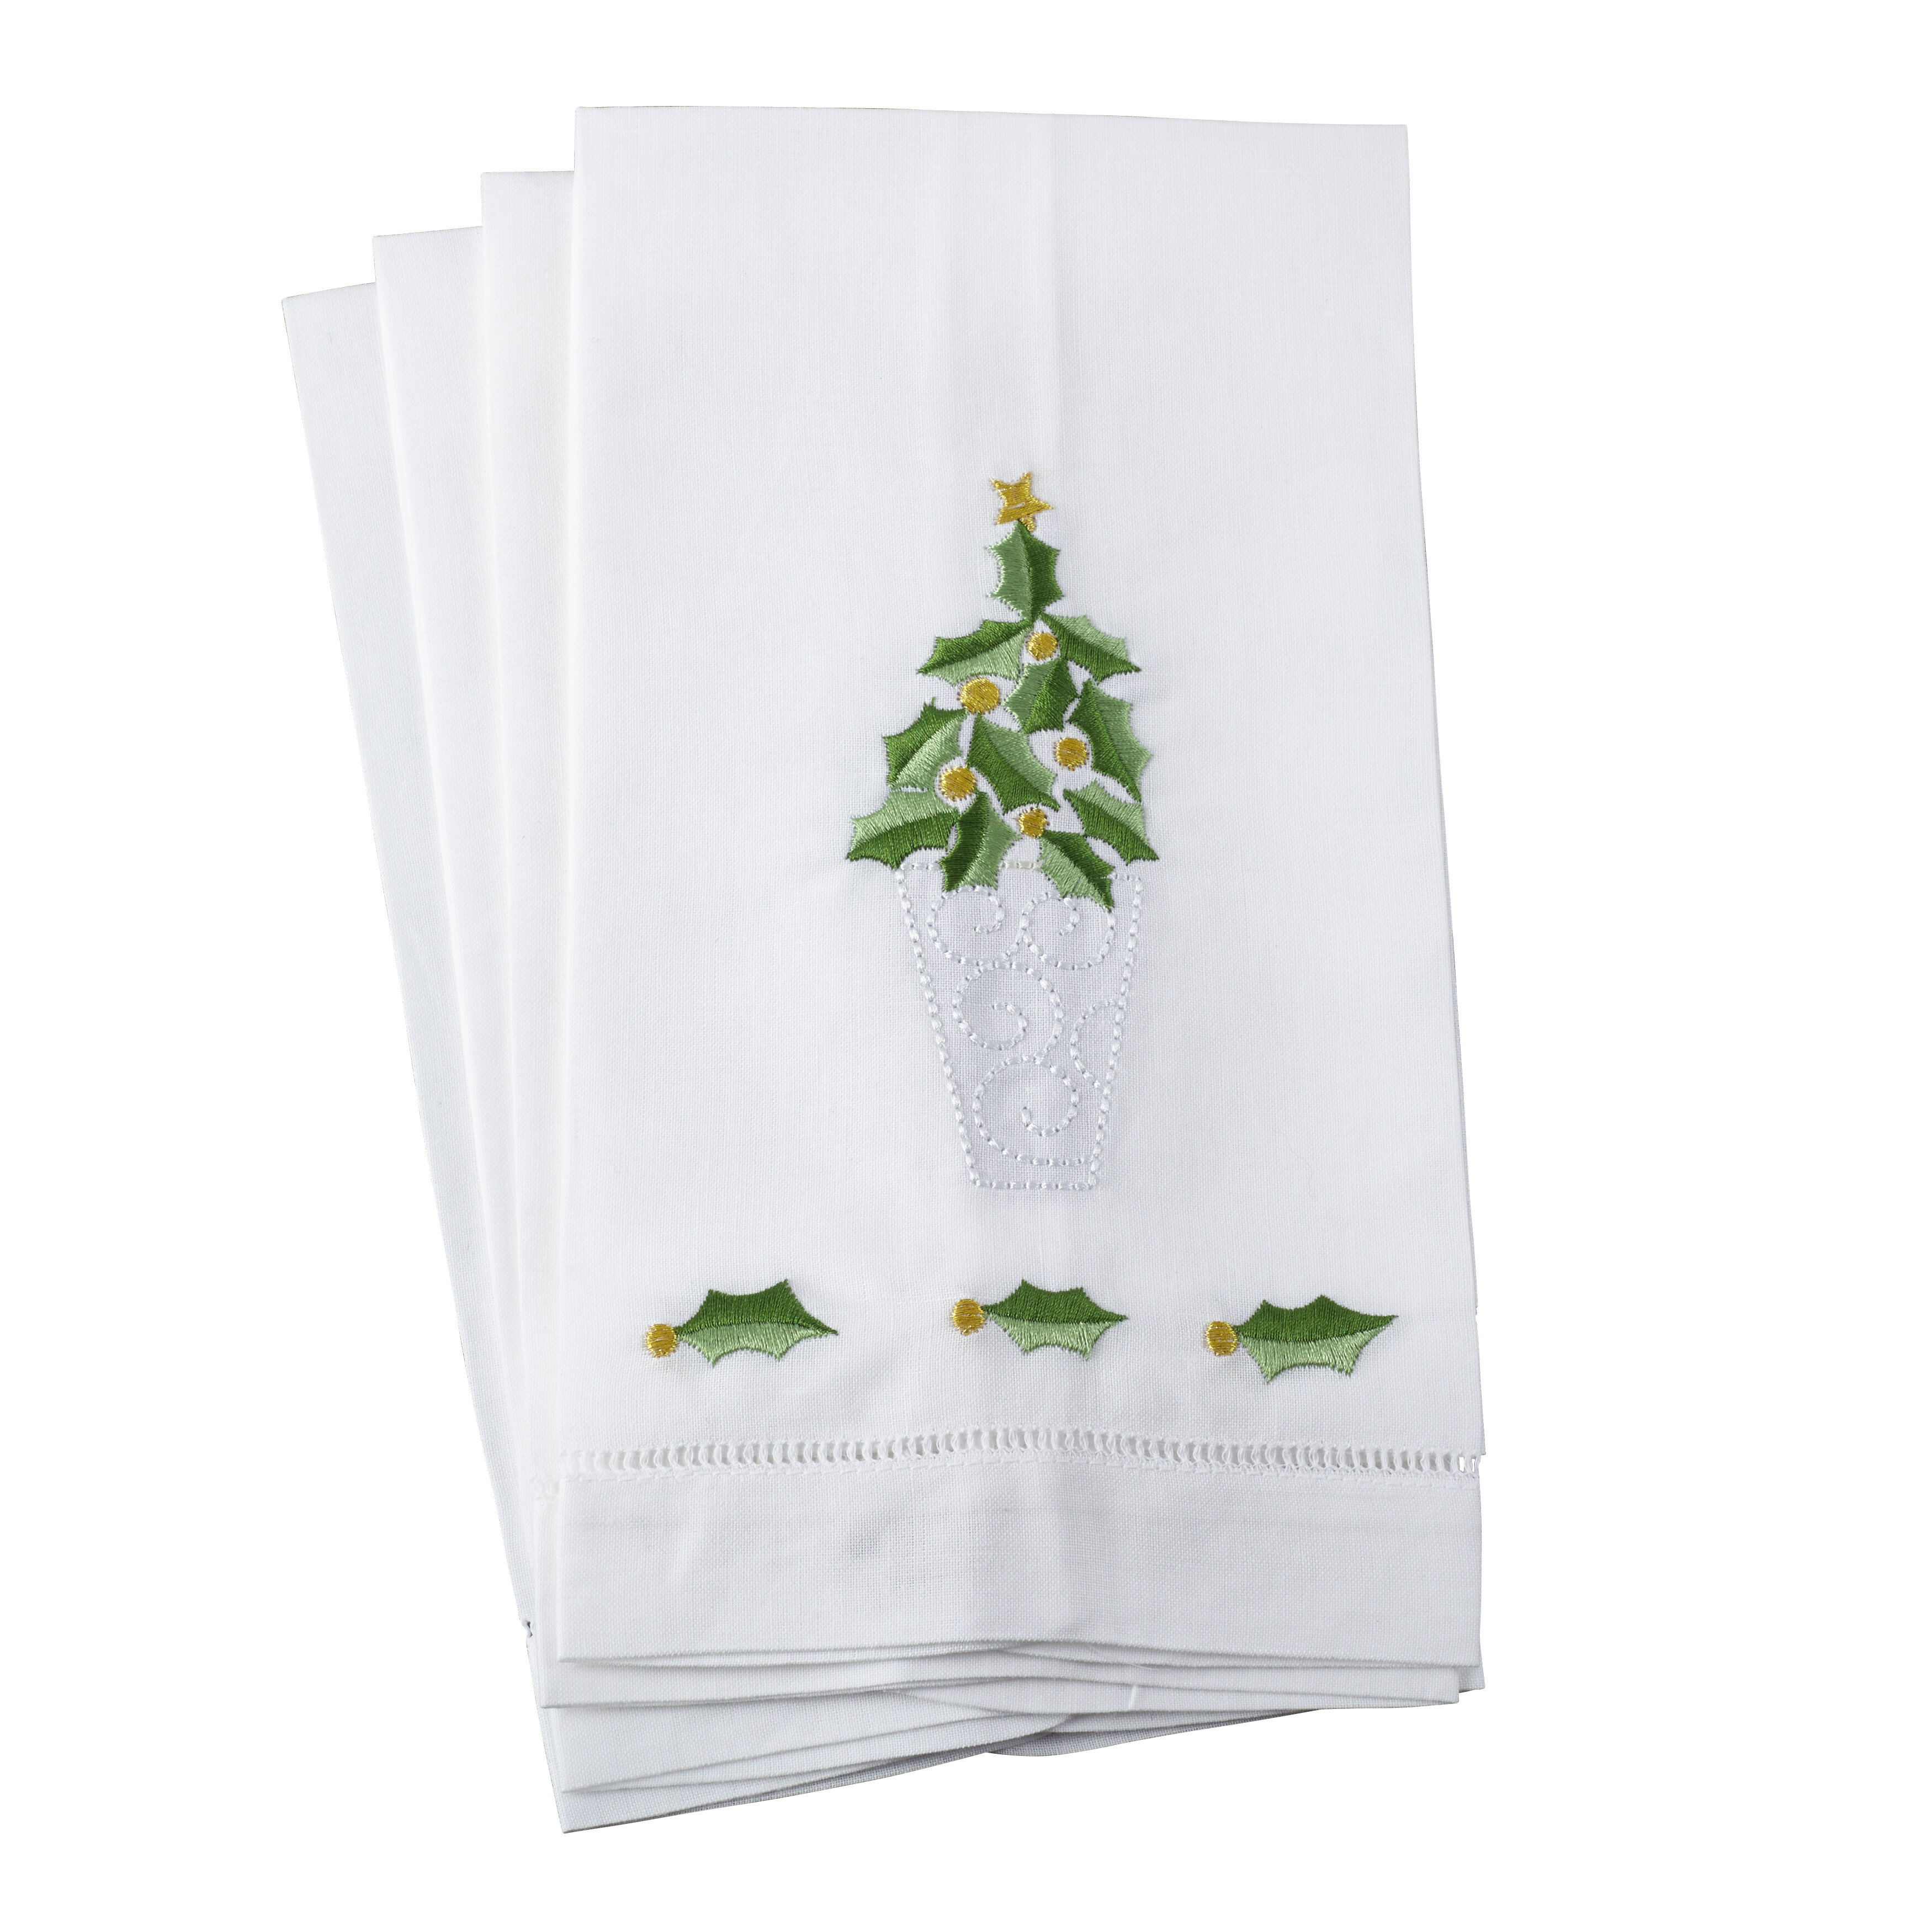 Embroidered Holly Leaf Christmas Tree Design Hand Towel